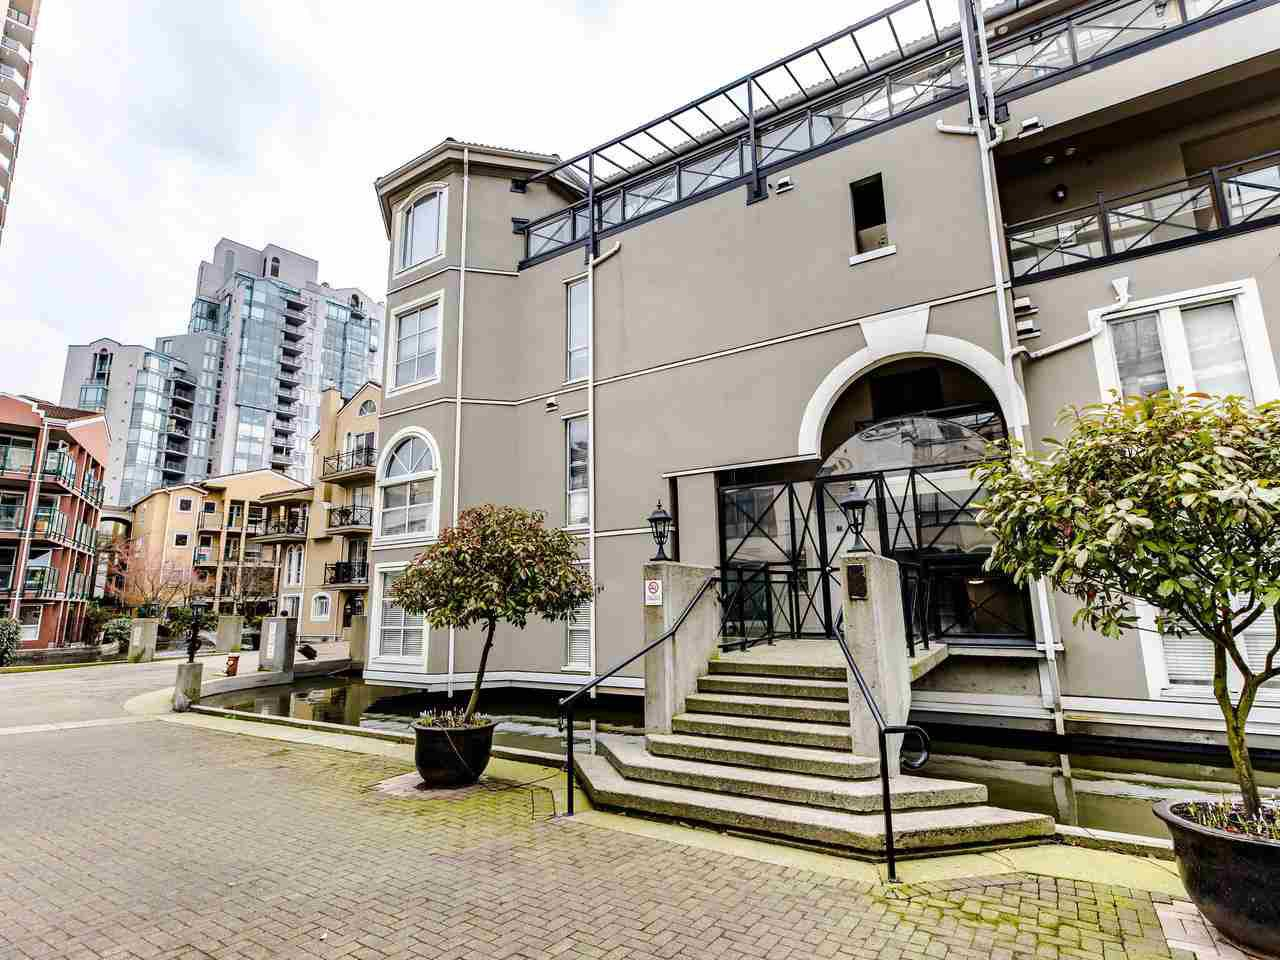 Main Photo: 207 5 RENAISSANCE SQUARE in New Westminster: Quay Condo for sale : MLS®# R2442124